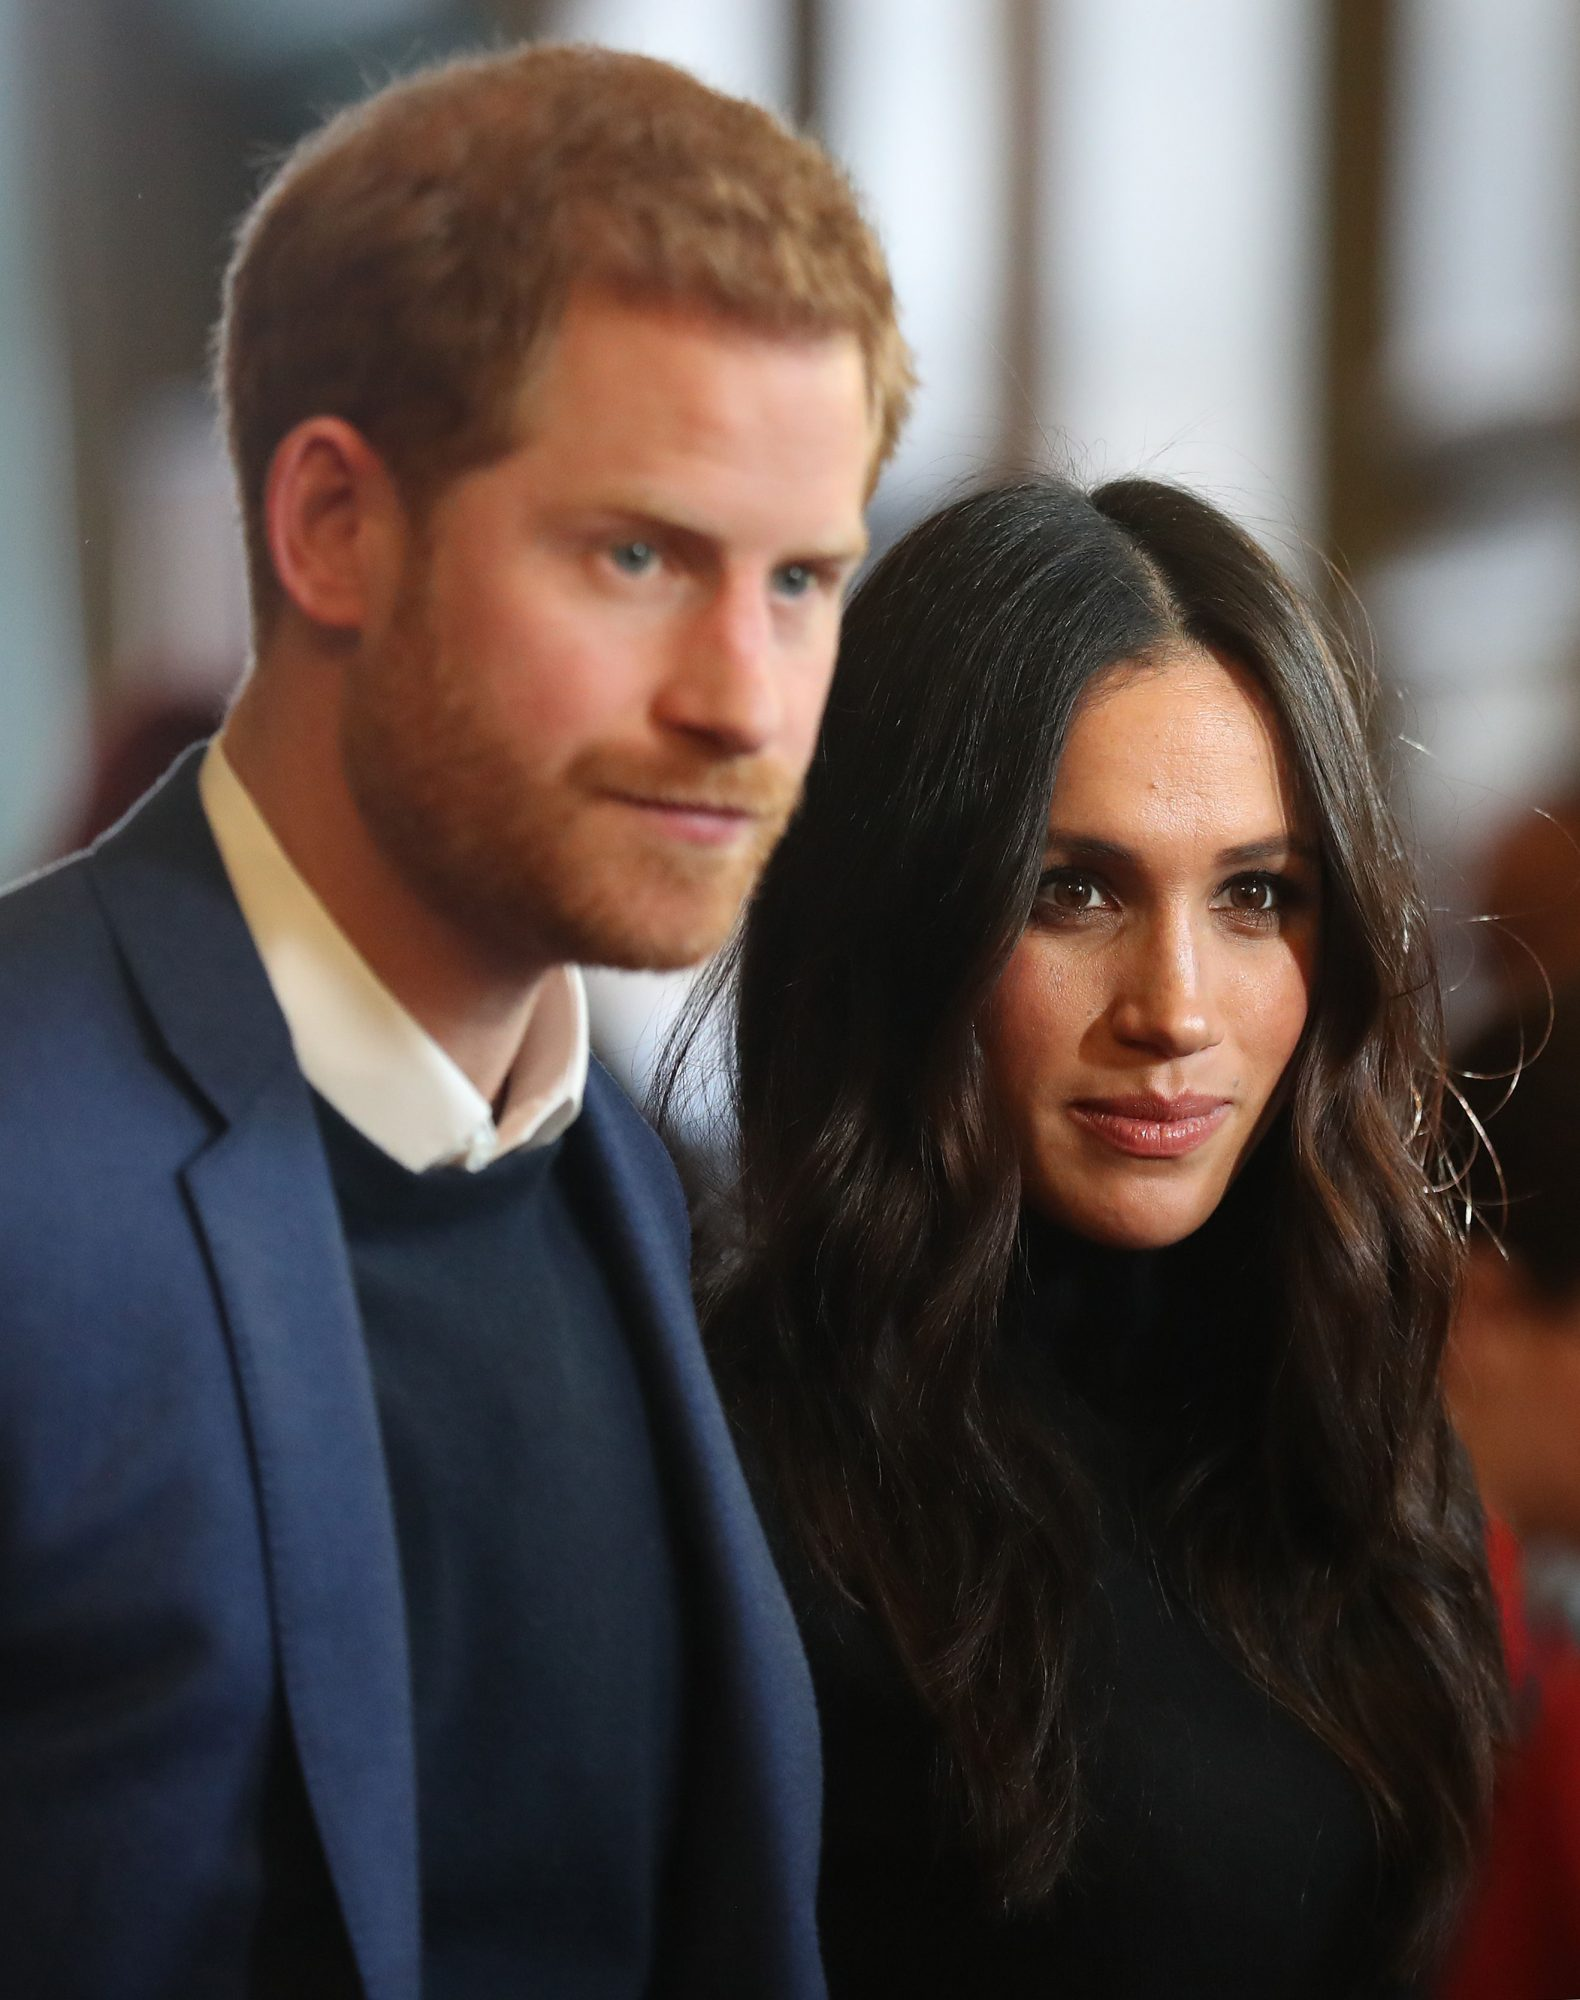 Meghan Markle and Prince Harry in Edinburgh